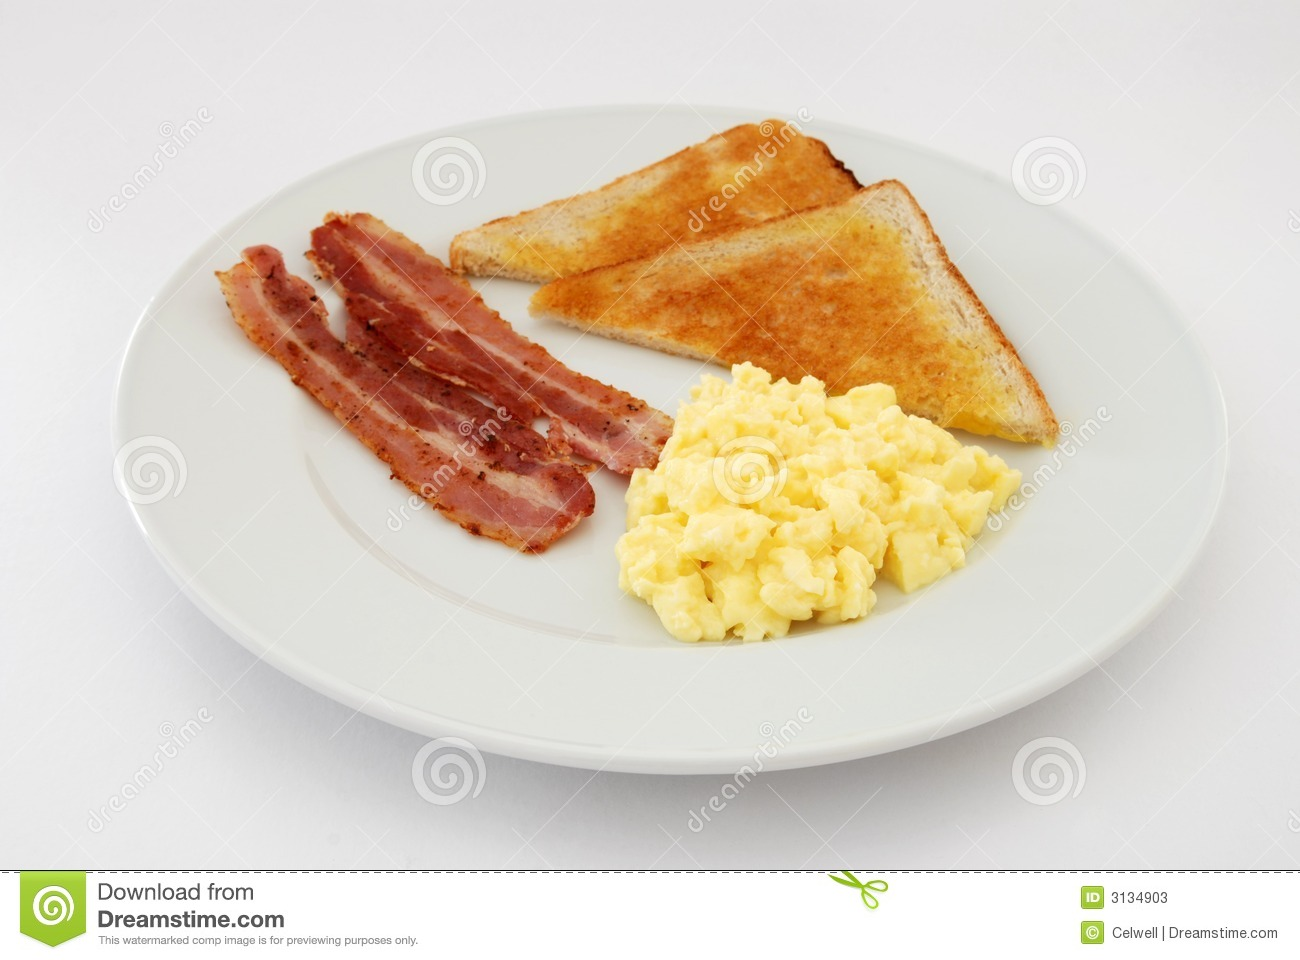 Scrambled Eggs With Bacon Stock Photos - Image: 3134903